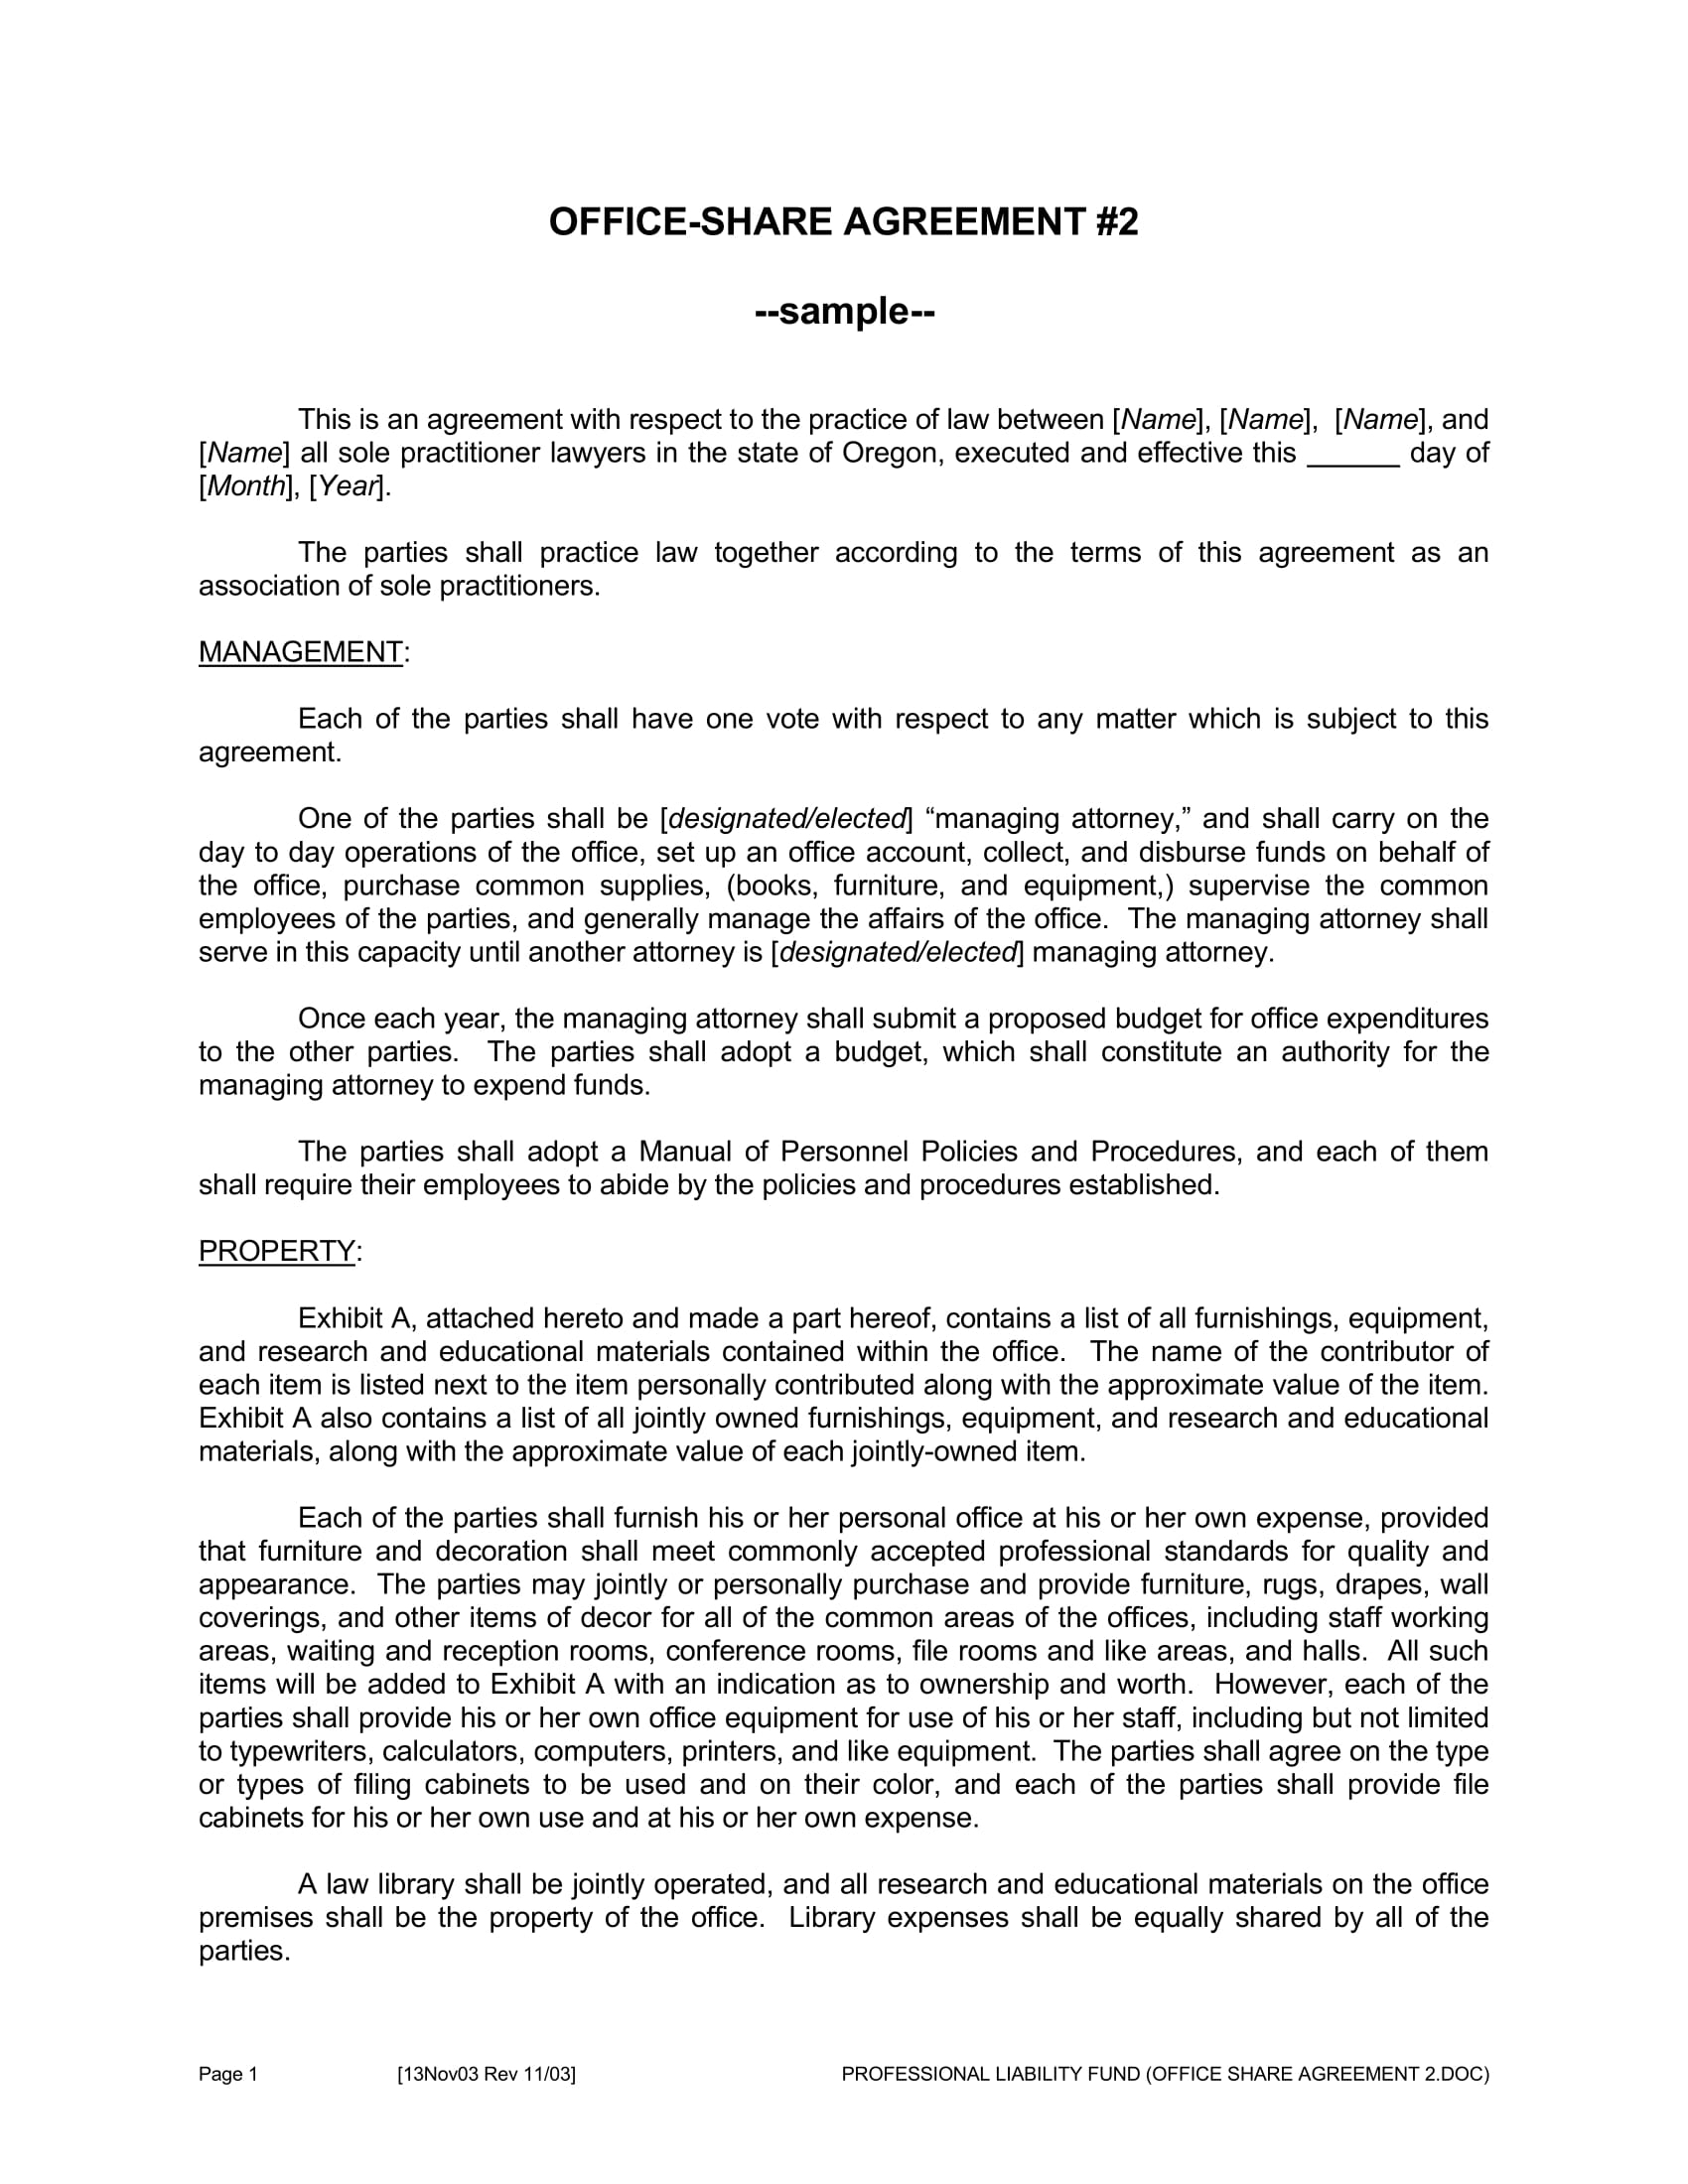 Office Space Sharing Agreement Template